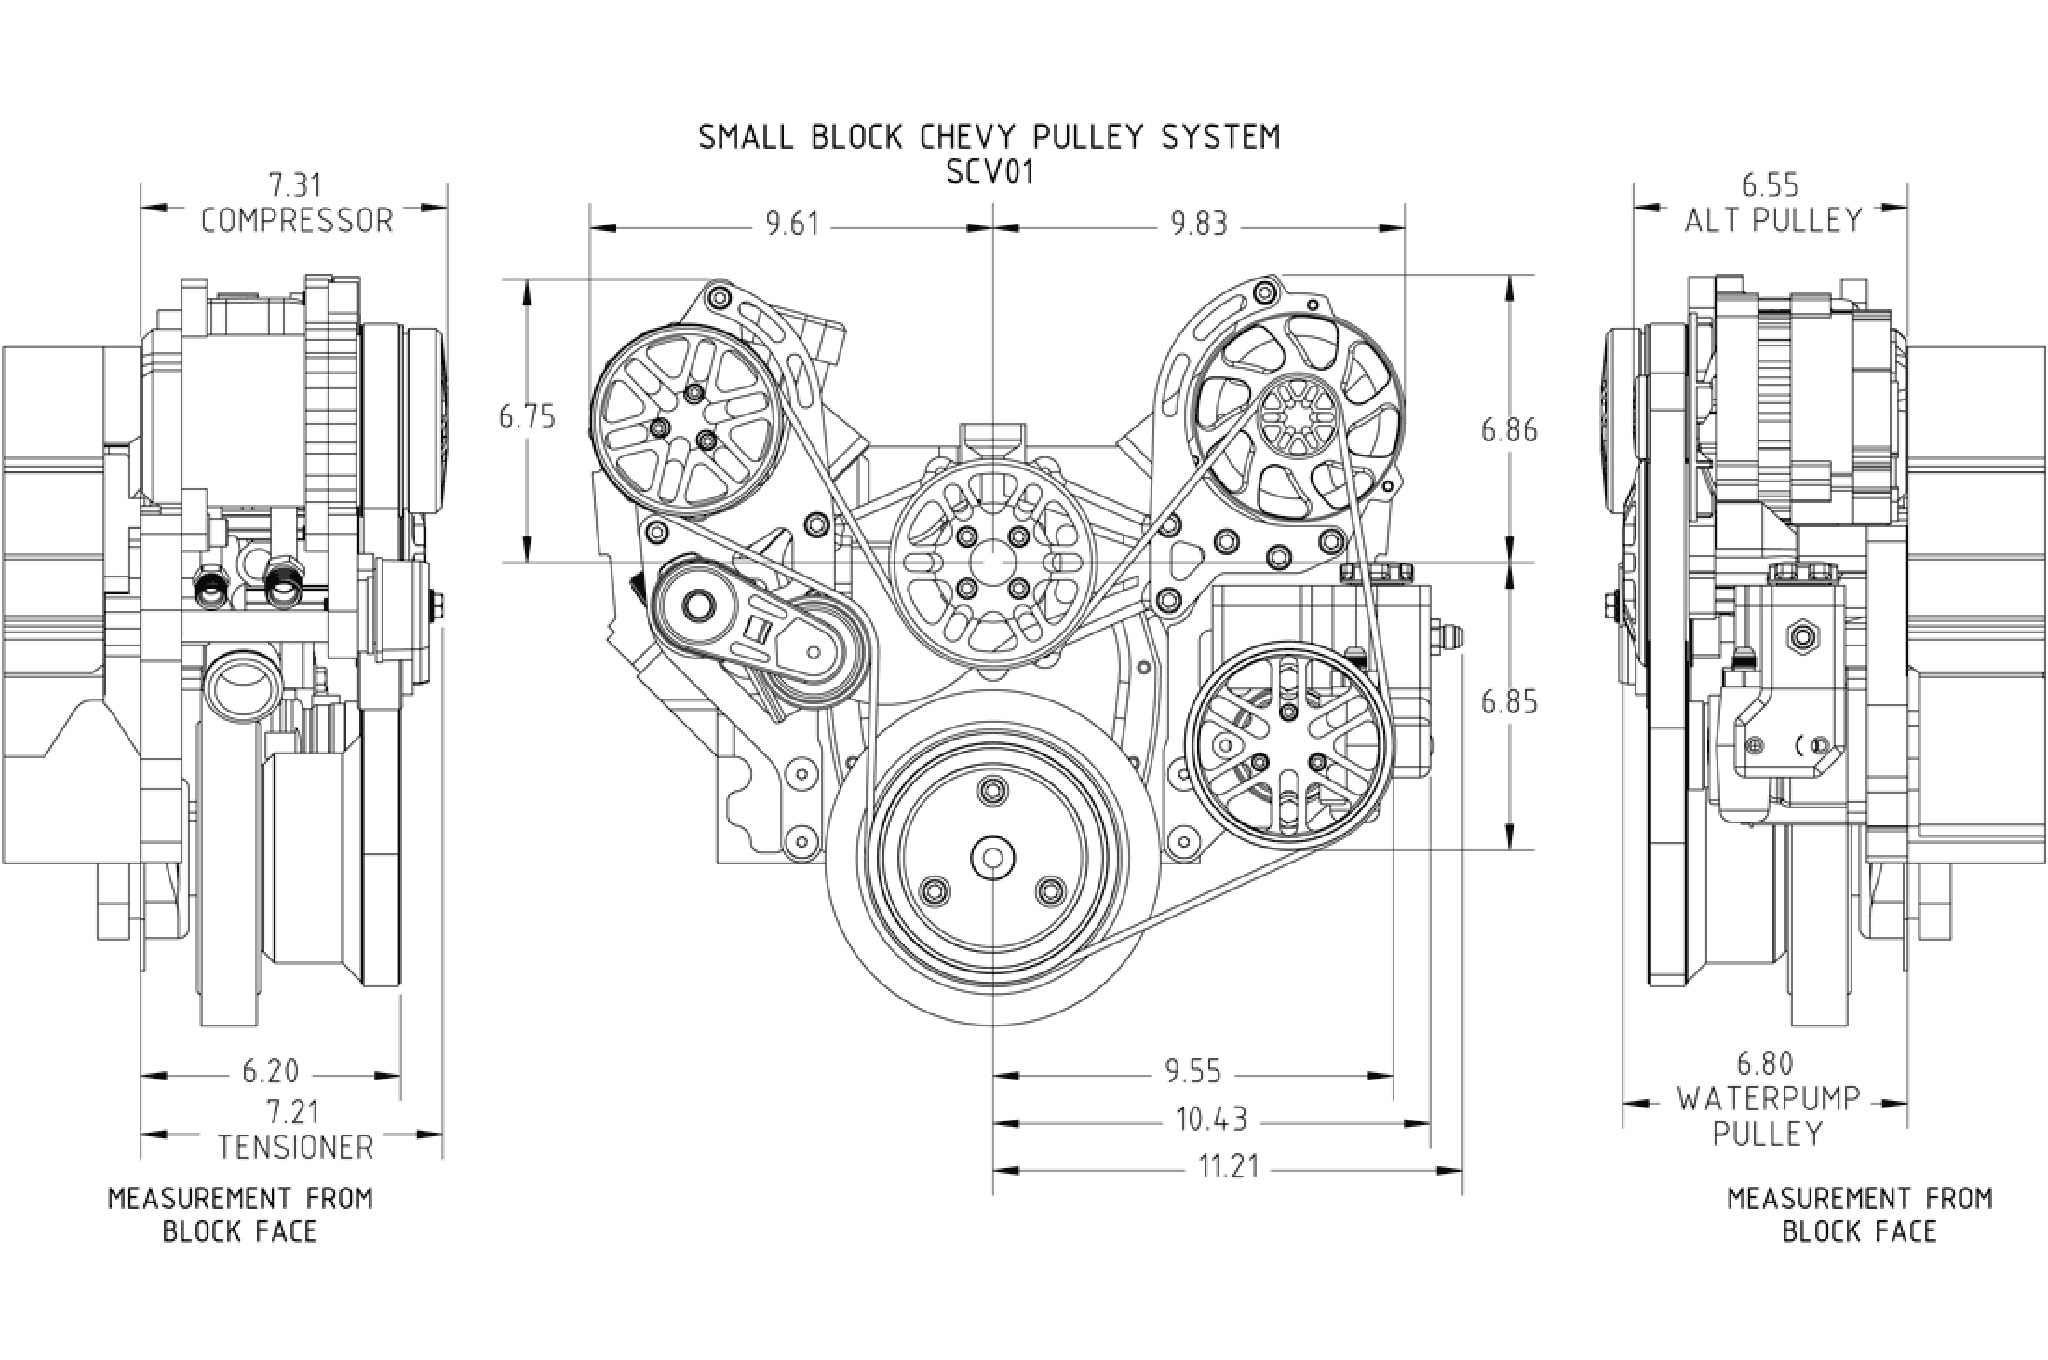 Modernizing a Small-Block Chevy with a Concept One Pulley